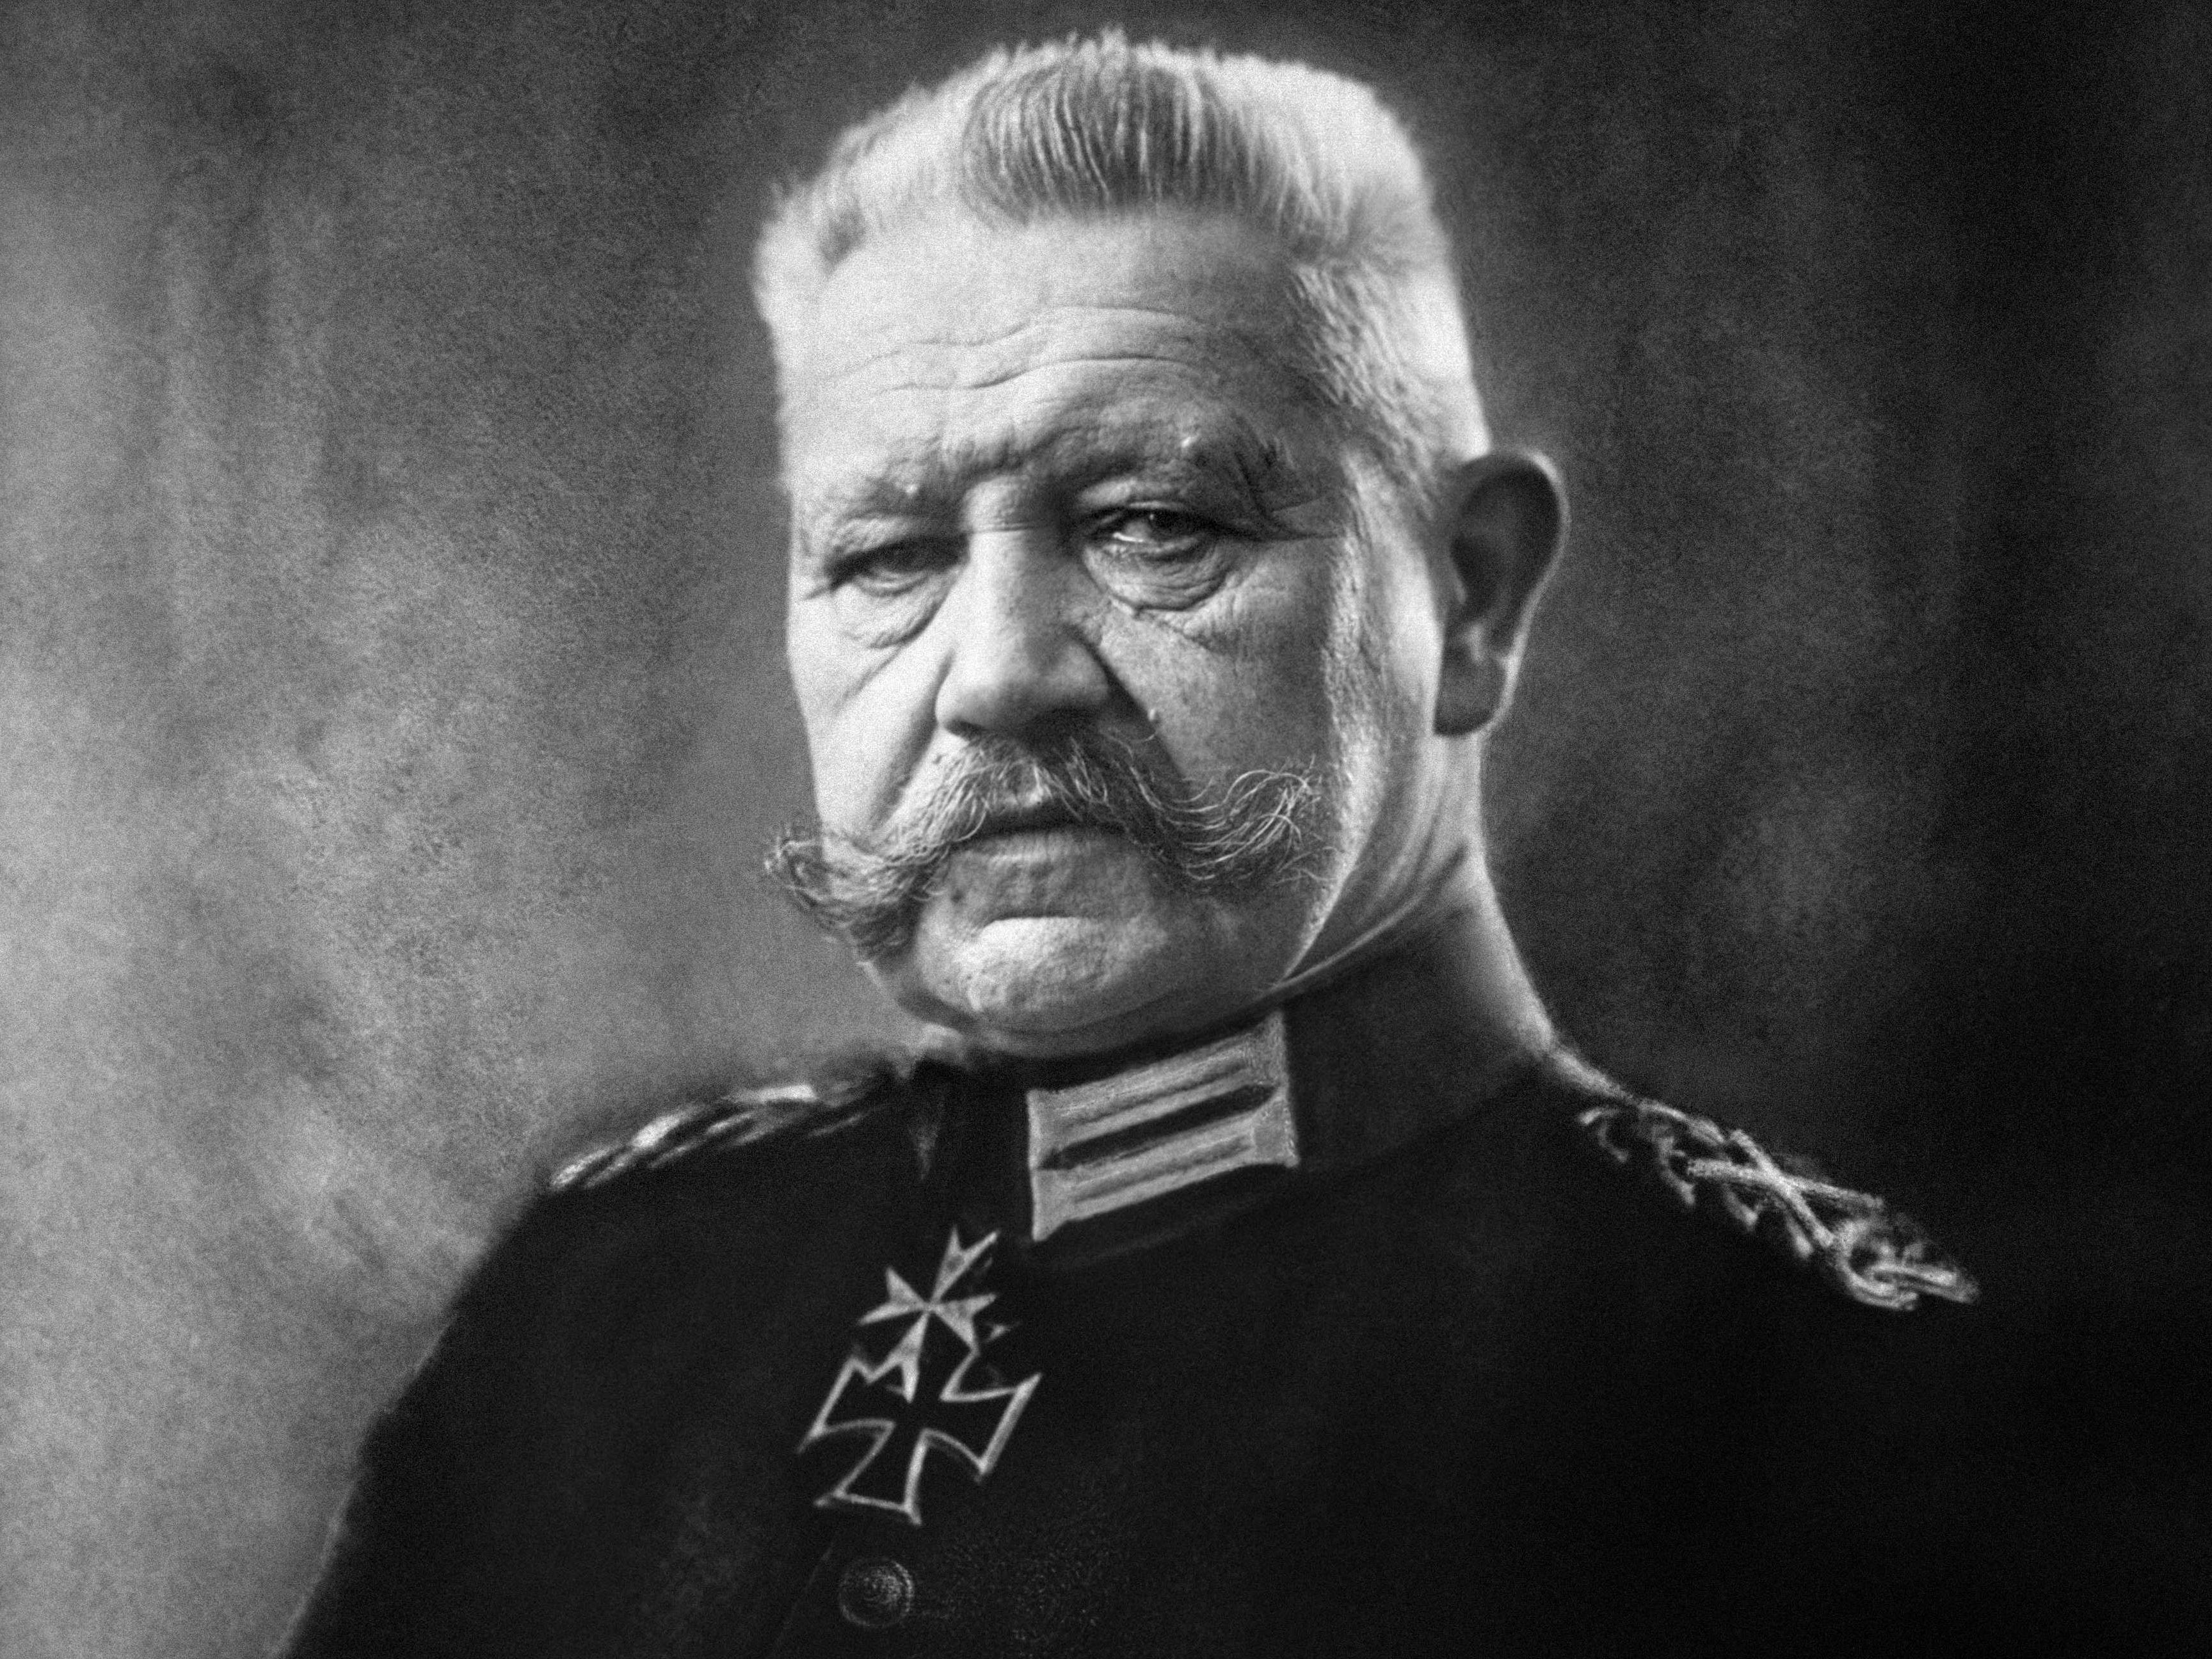 In this file photo taken on Sept. 12, 1914, during World War I, German Field Marshal Paul von Hindenburg Commander of German and Austrian Forces poses.